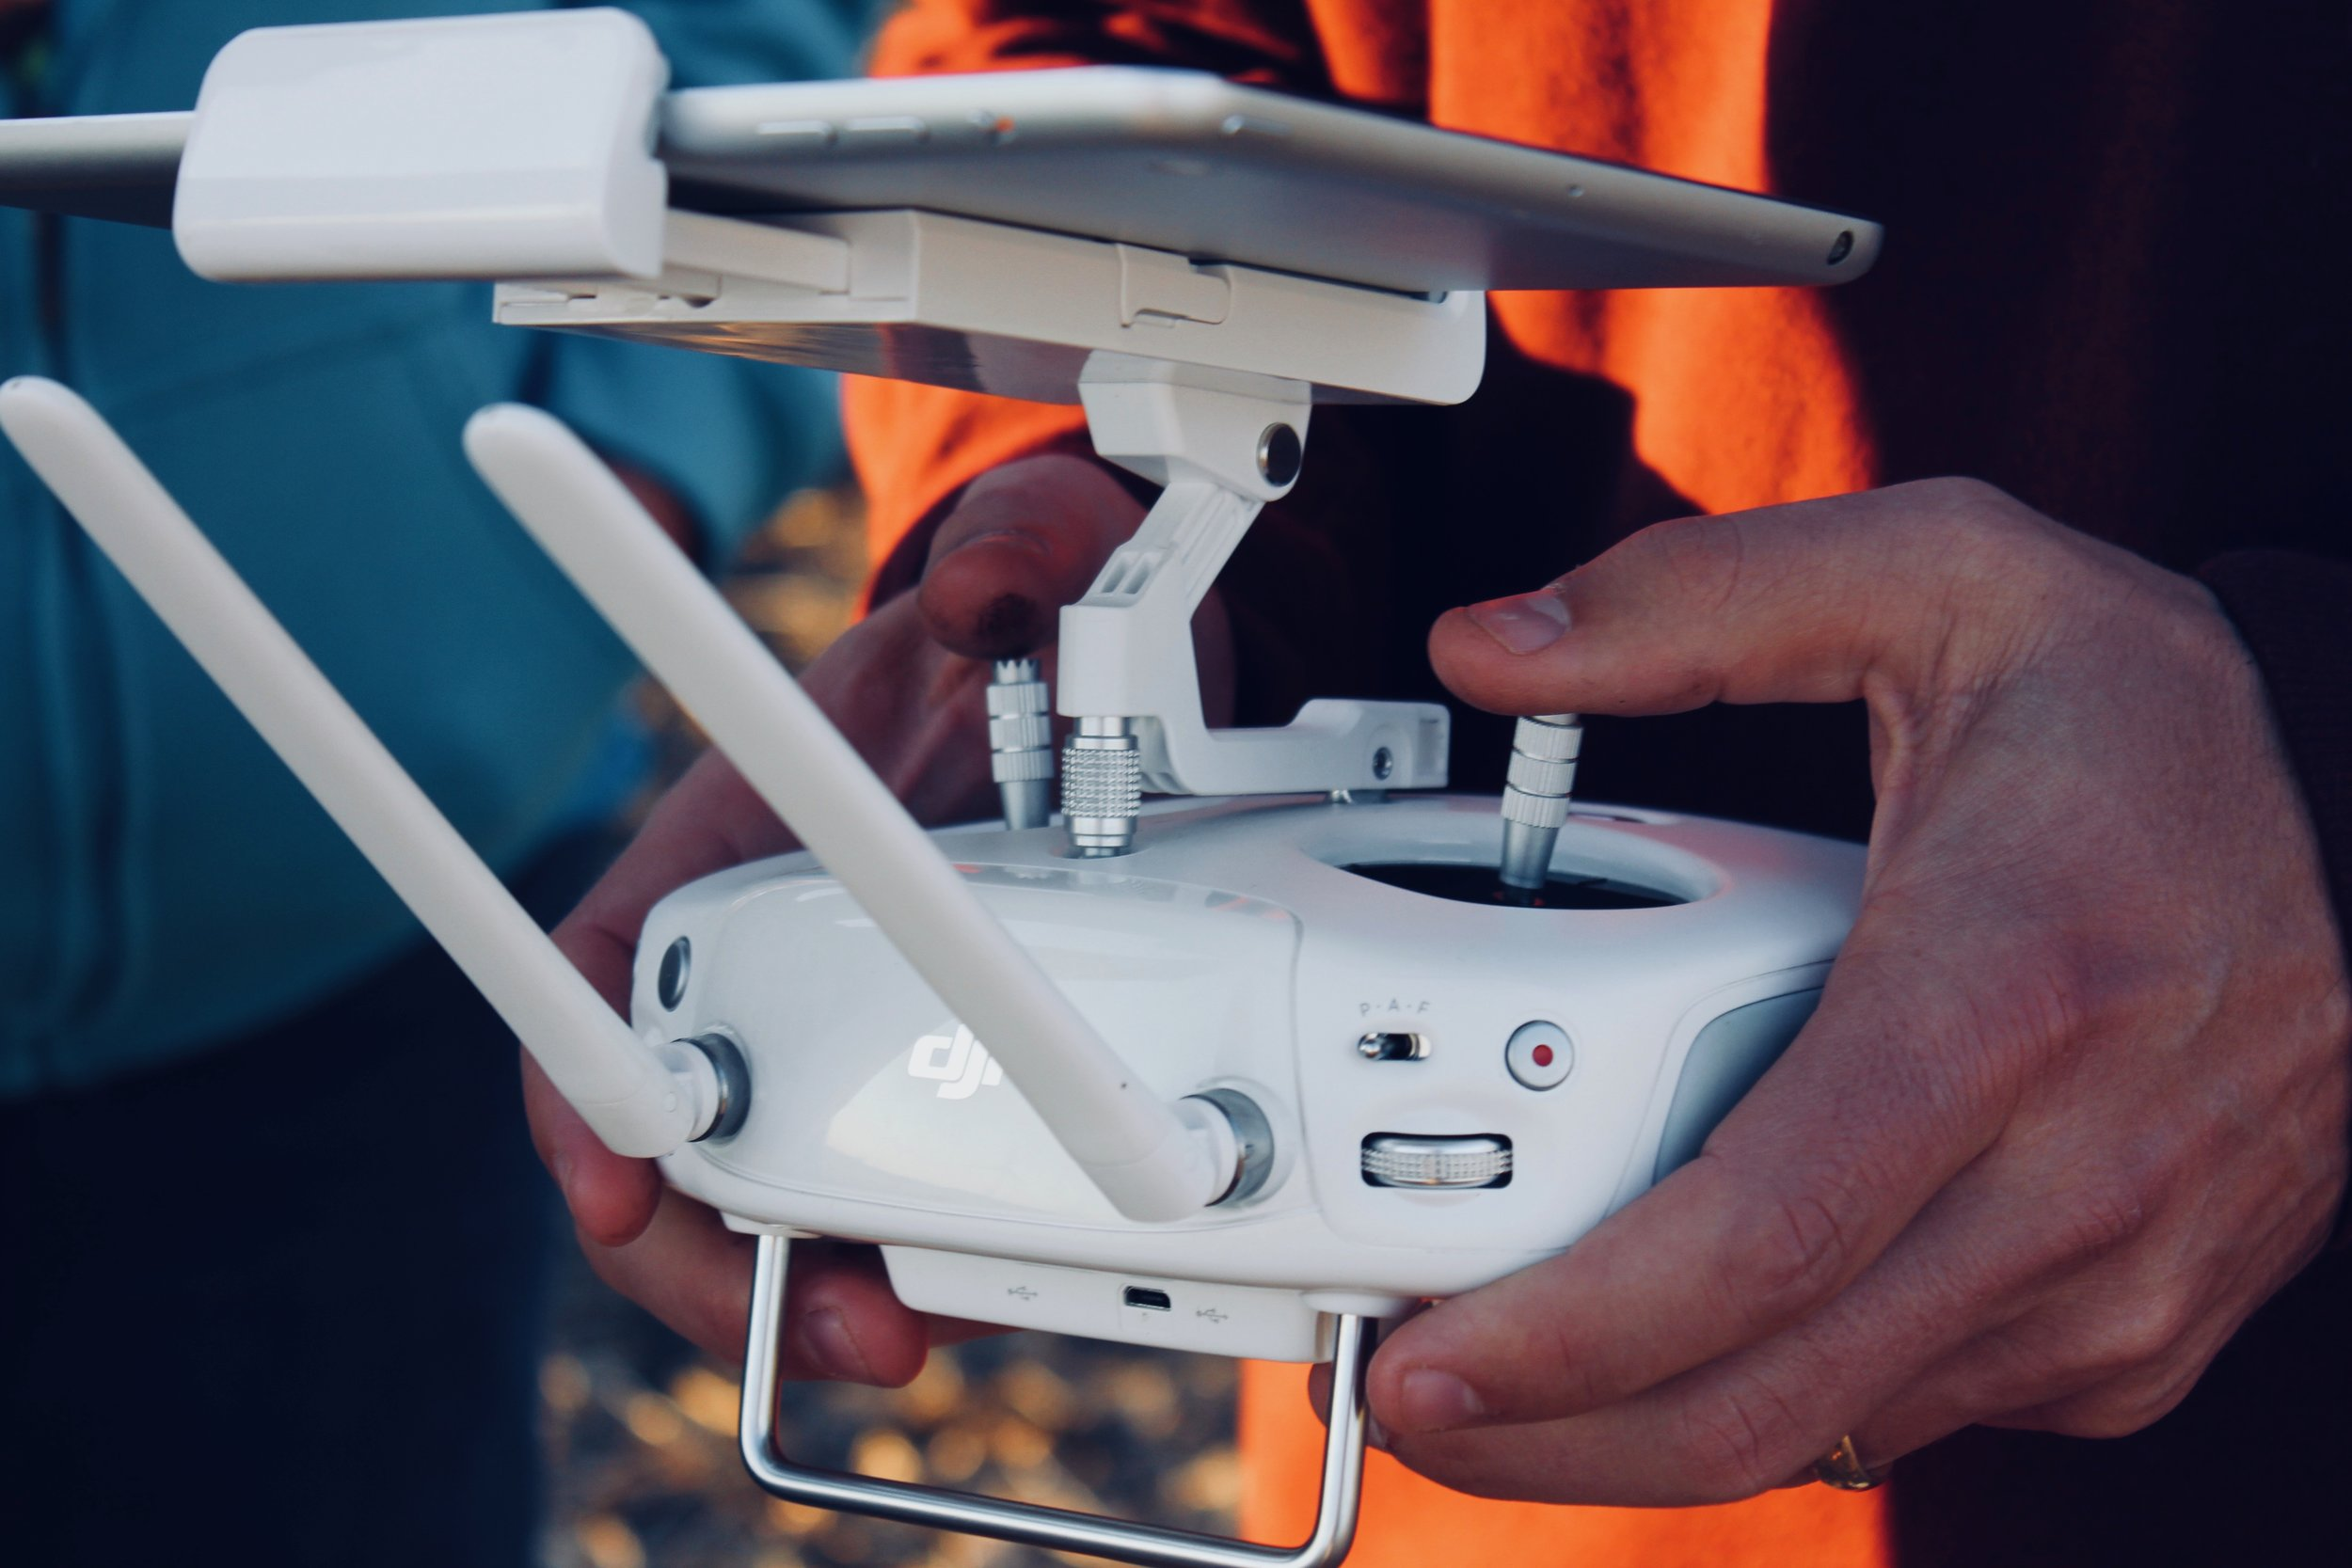 Being a professional drone operator: focus. - By Aerondrone The 13th of May 2019